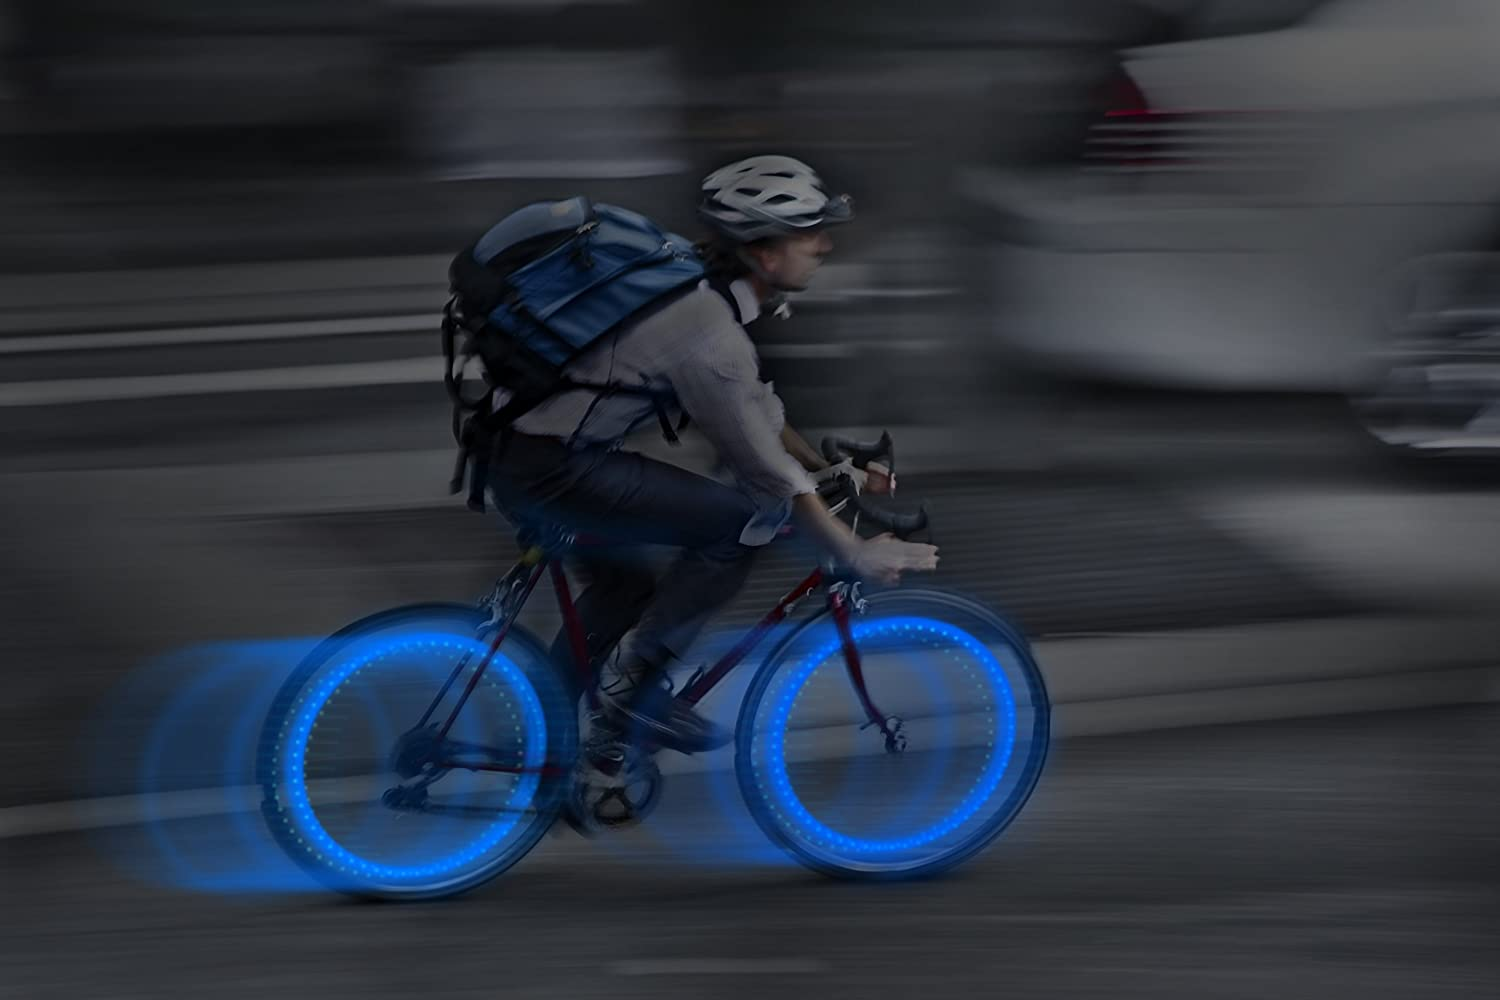 Nite Ize See Em Mini LED Bicycle Spoke Lights Wheel Lights for Nighttime Visibility Safety 4 Pack Assorted Colors